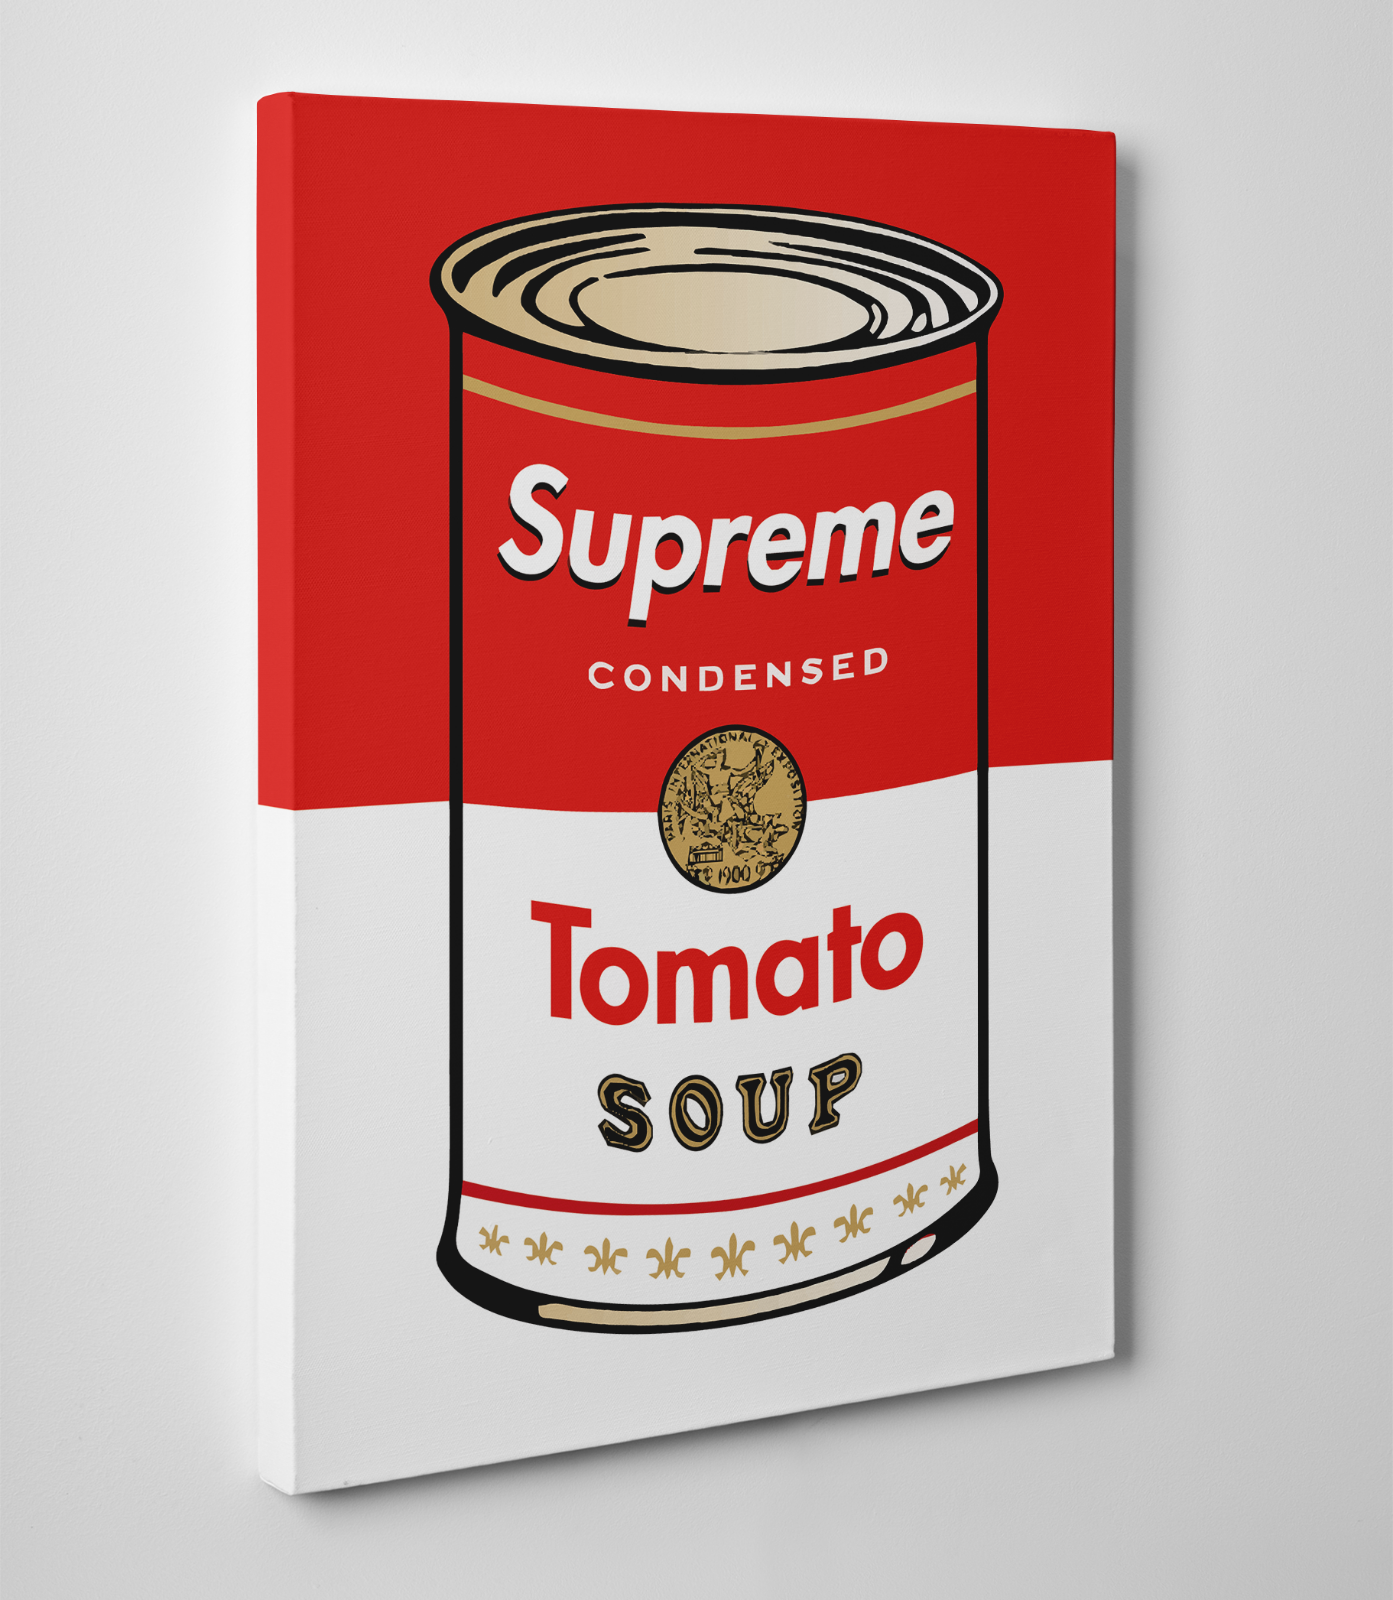 Supreme X Andy Warhol Tomato Soup Campbells Can Gallery Art Canvas Series Campbell Soup Art Supreme Art Art Prints For Sale